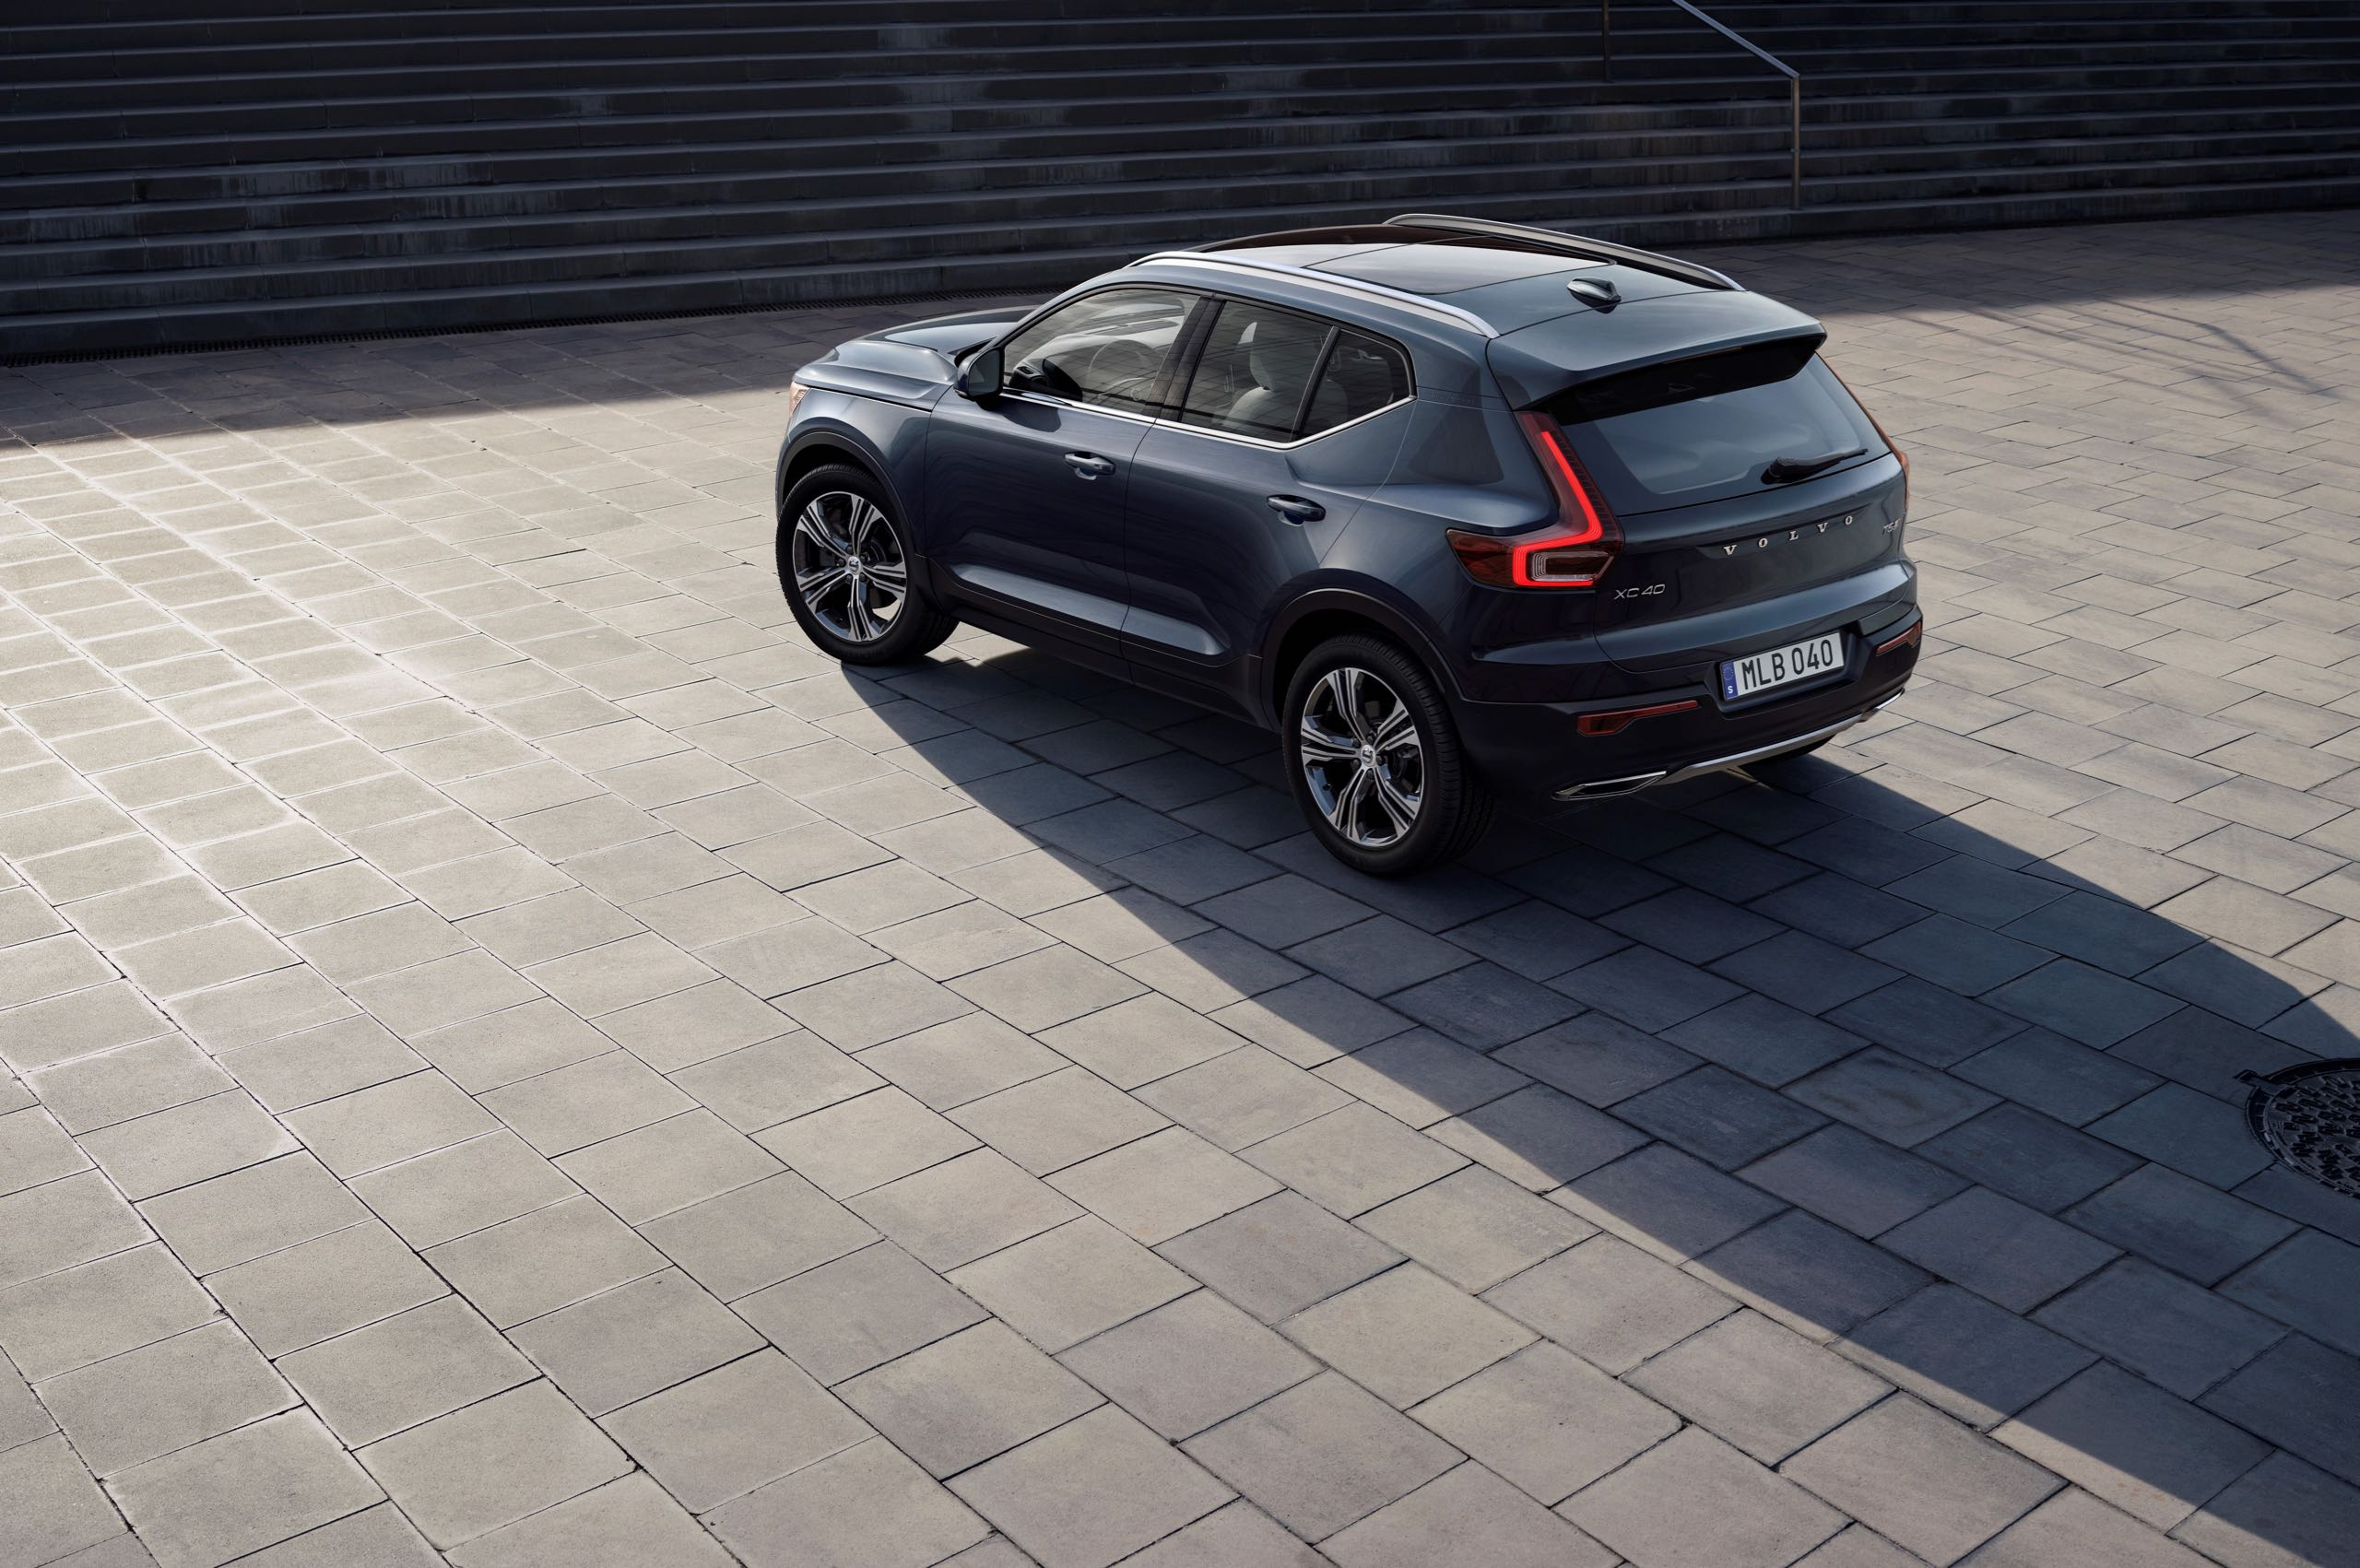 New Volvo XC40 Exterior -  2018, 2018 New XC40, Design, Exterior, Images, New XC40